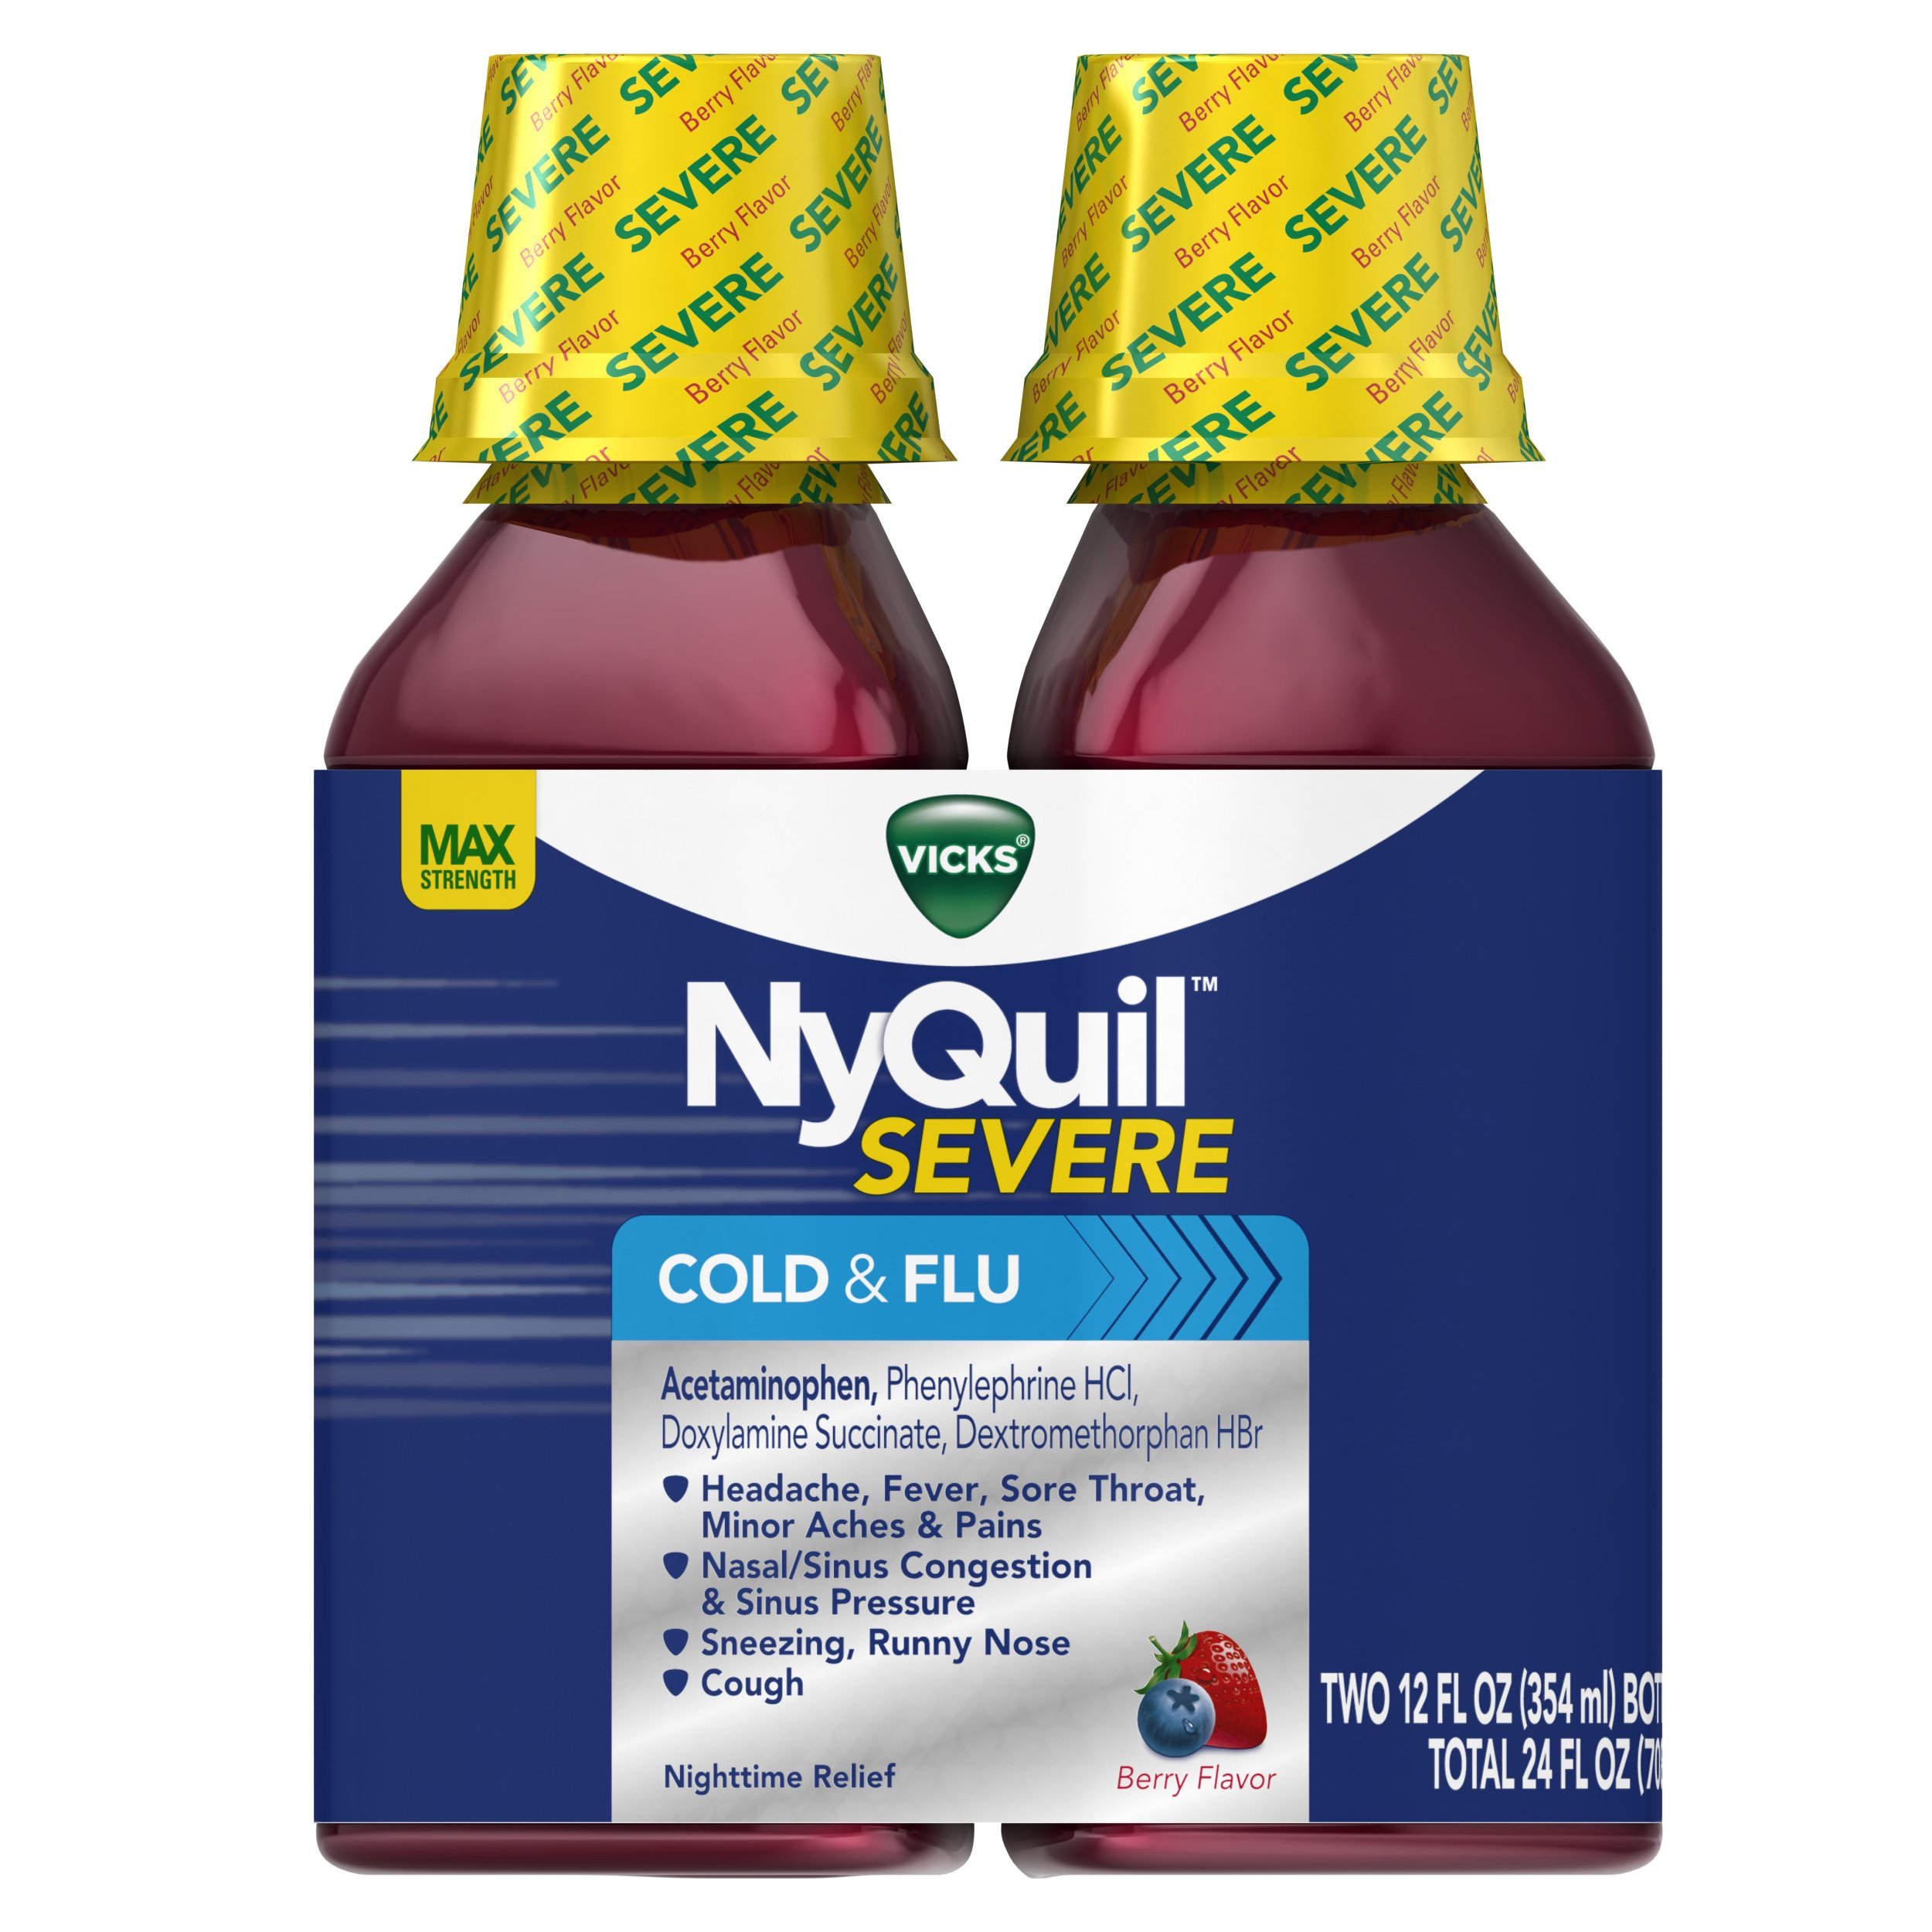 Vicks NyQuil SEVERE Cough Cold and Flu Nighttime Relief Berry Flavor Liquid Twin Pack, 2x12